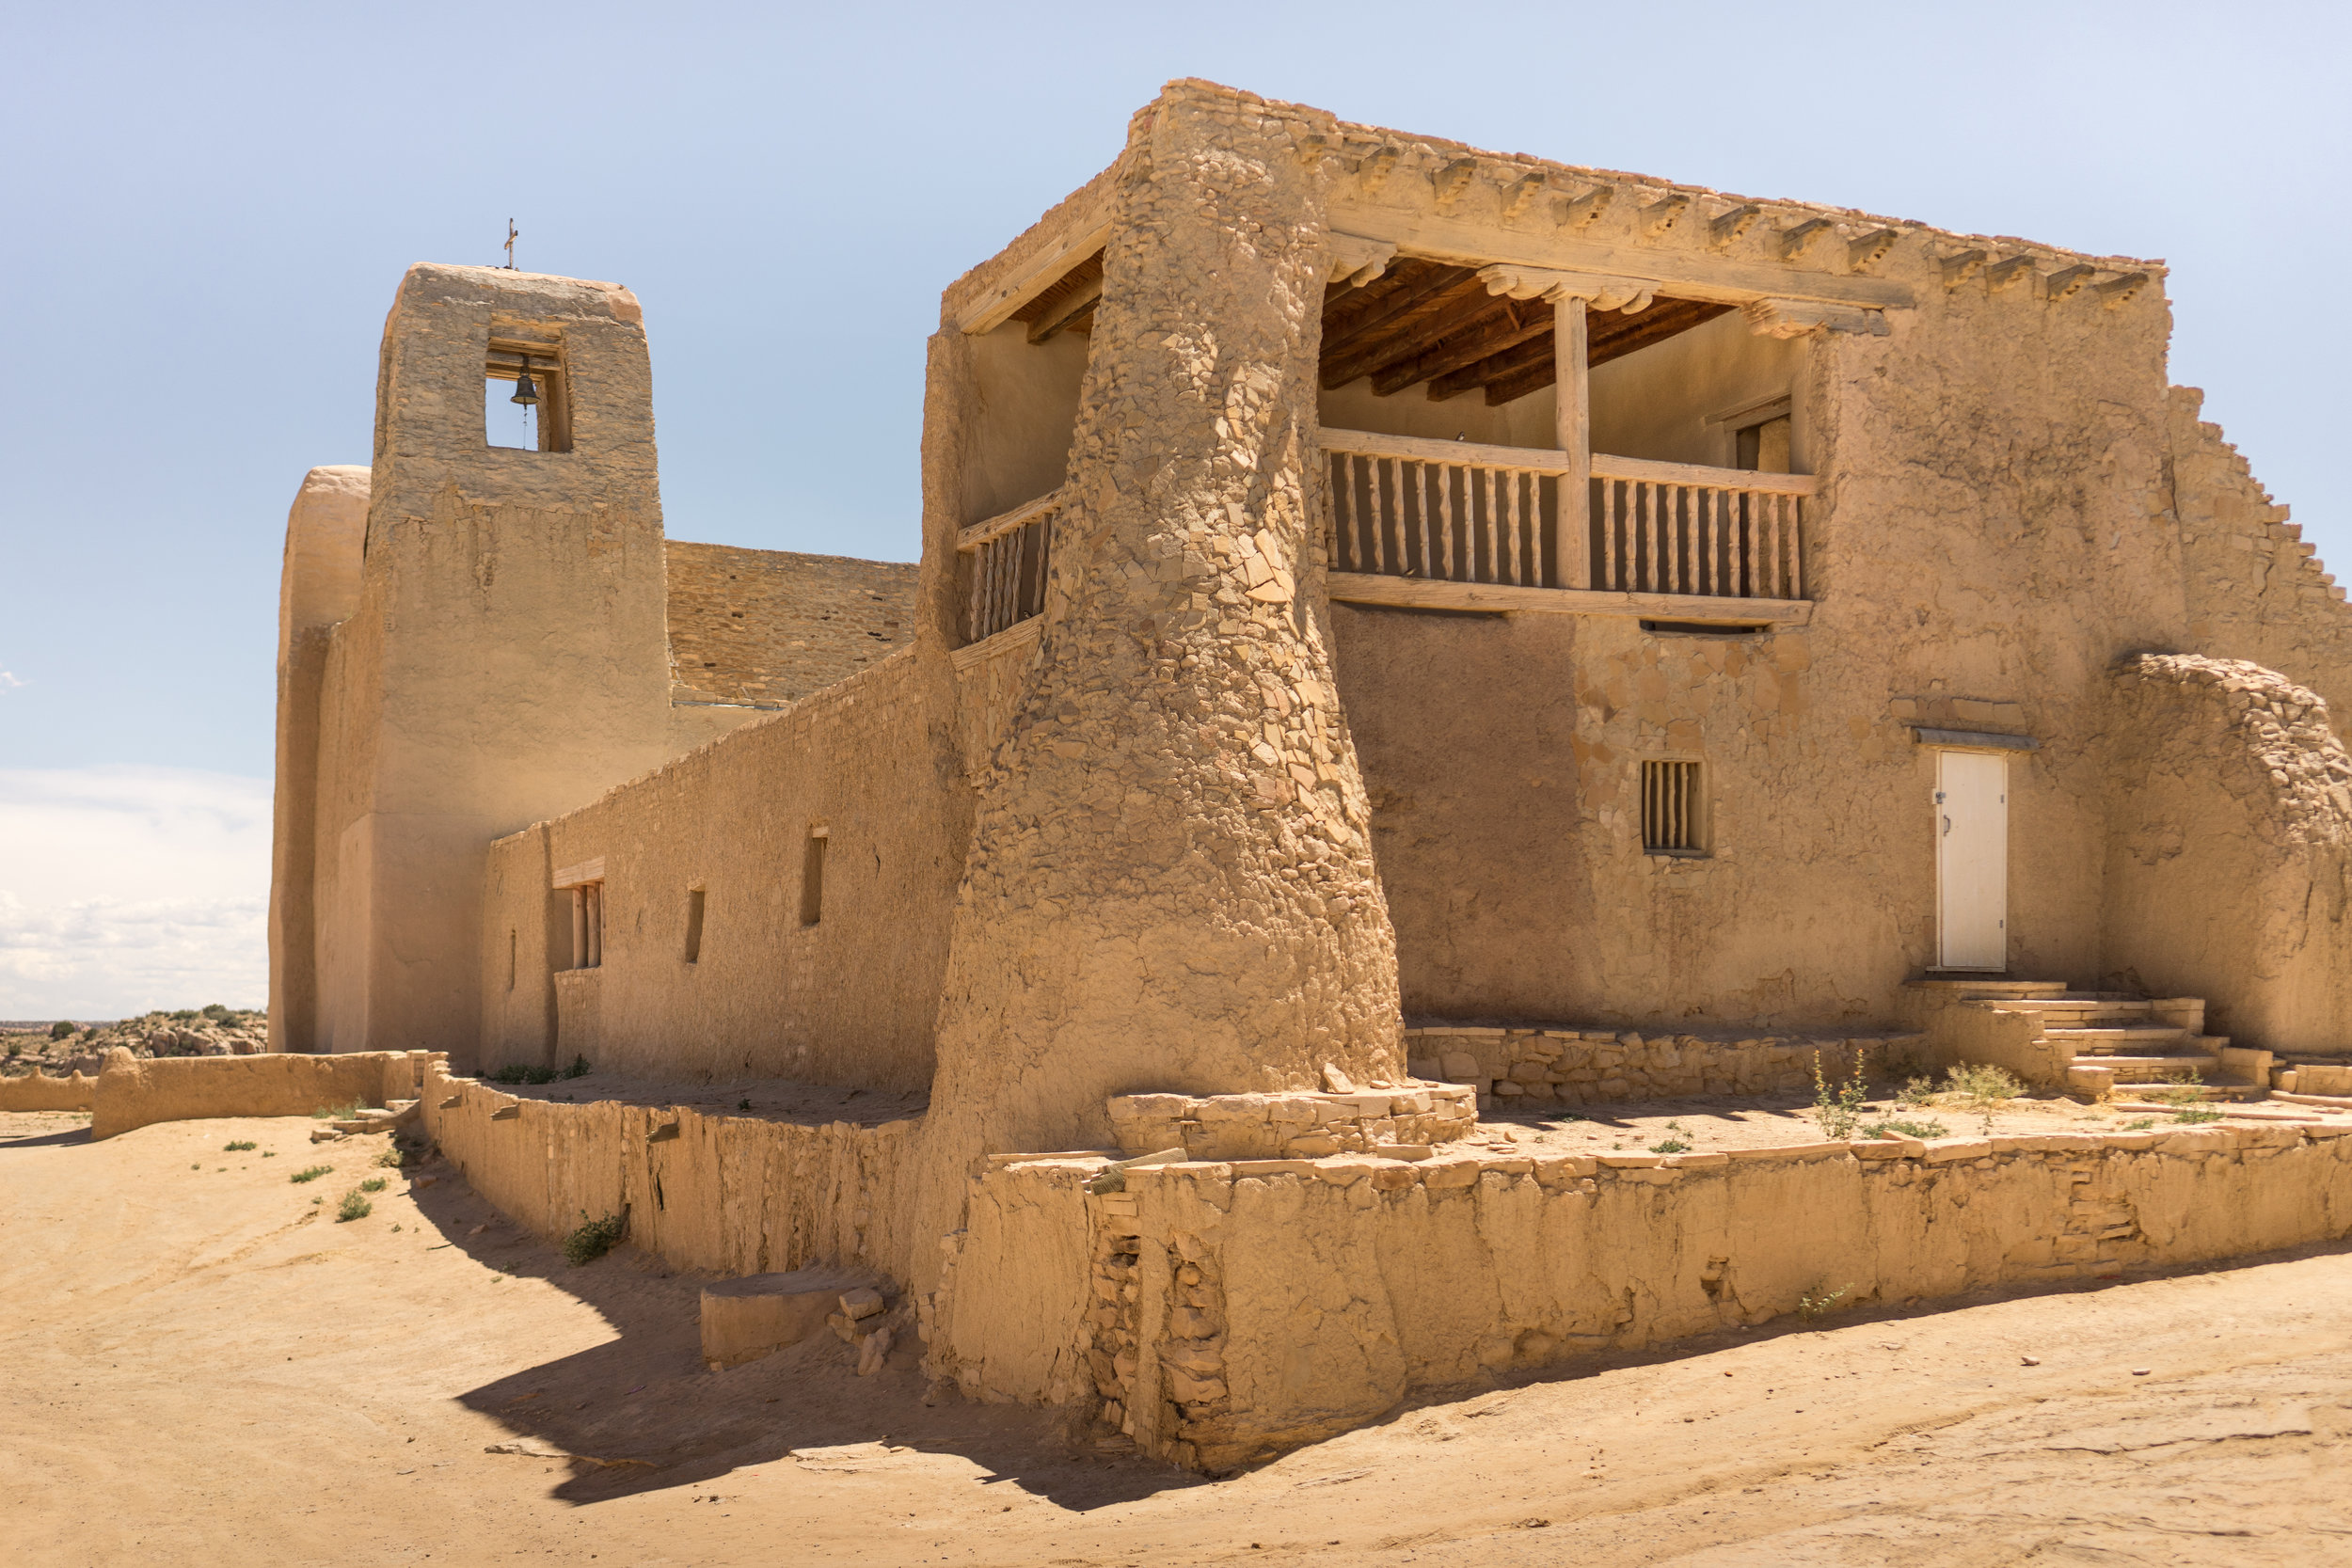 San Esteban del Rey, Acoma Pueblo, New Mexico. Photo: Tiago Silva Nunes